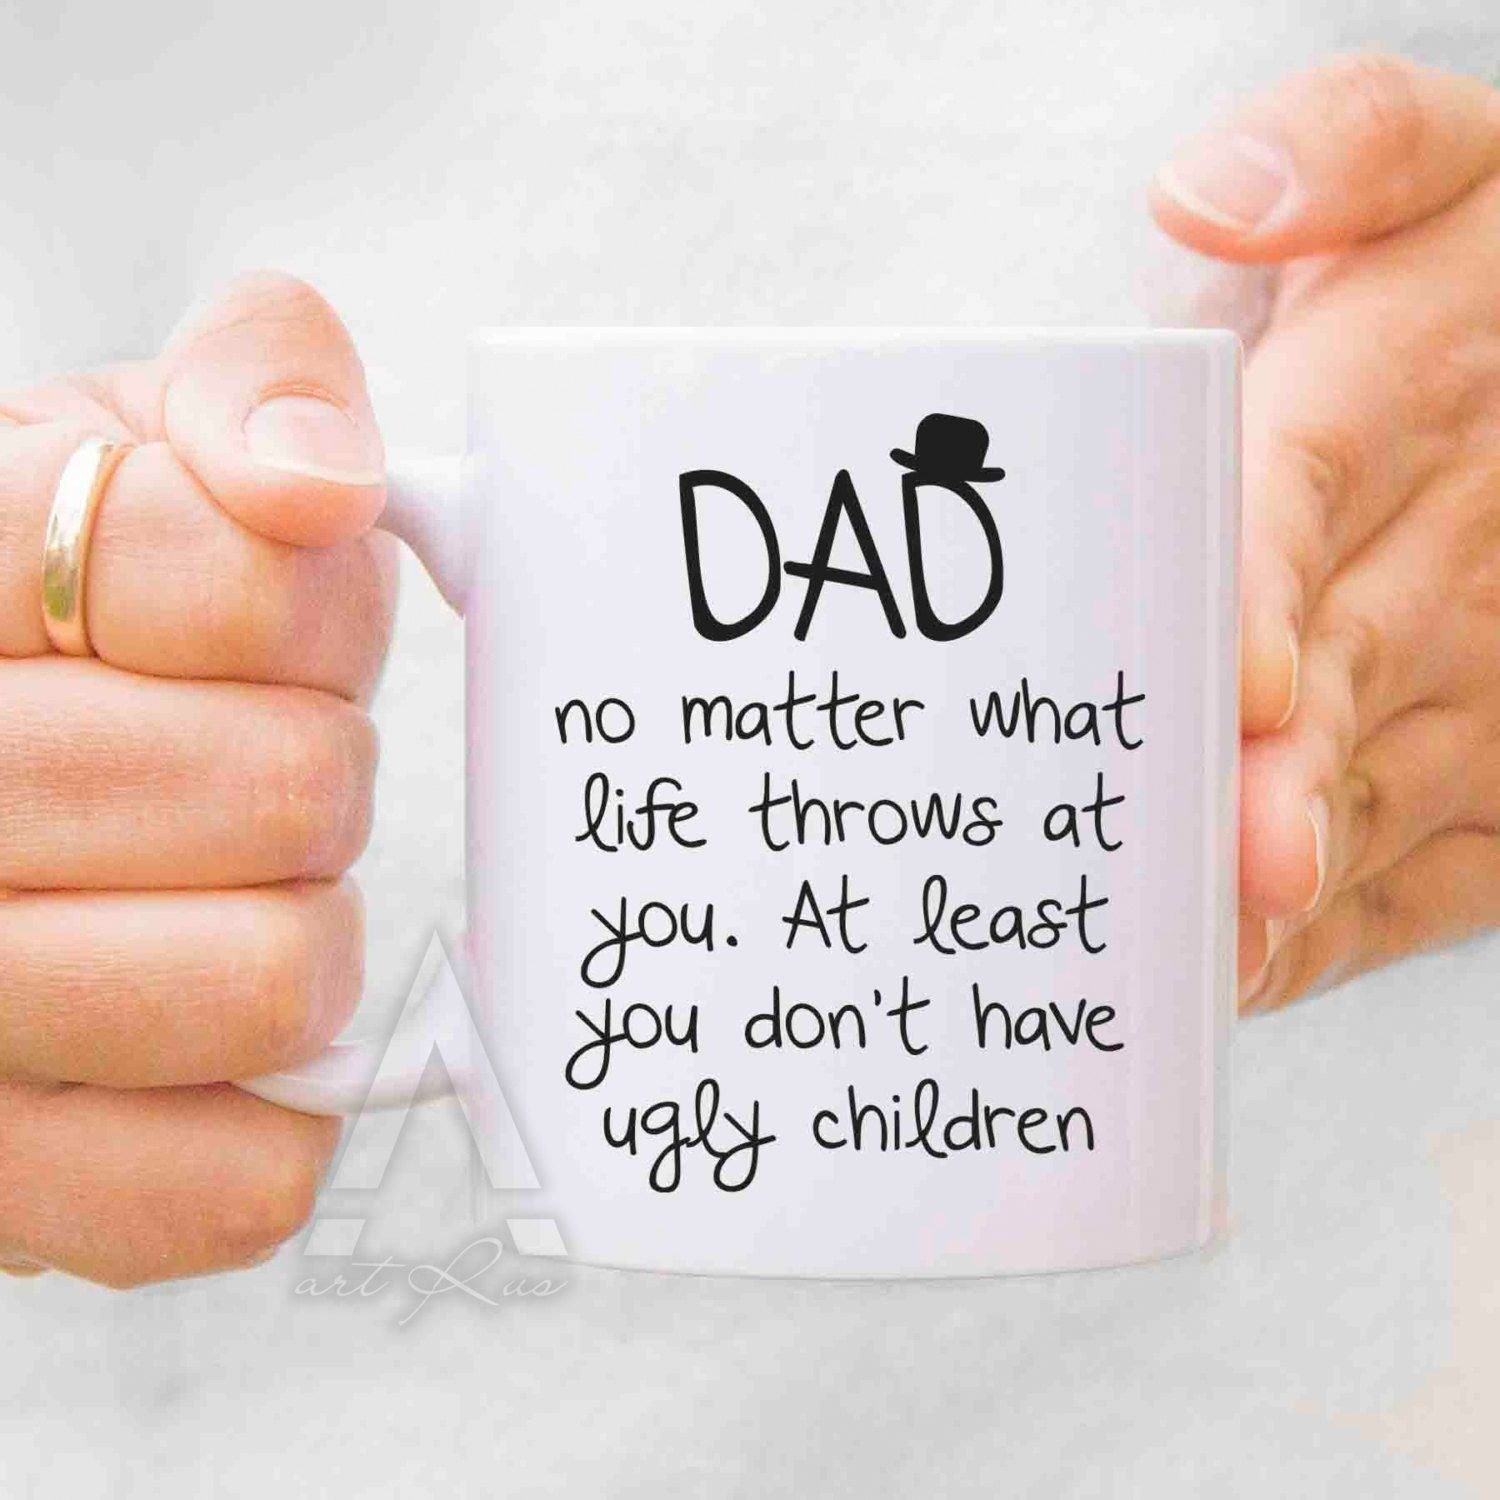 10 Best Christmas Gift Ideas For Dad From Daughter dad birthday gift fathers day gift from daughter fathers day mugs